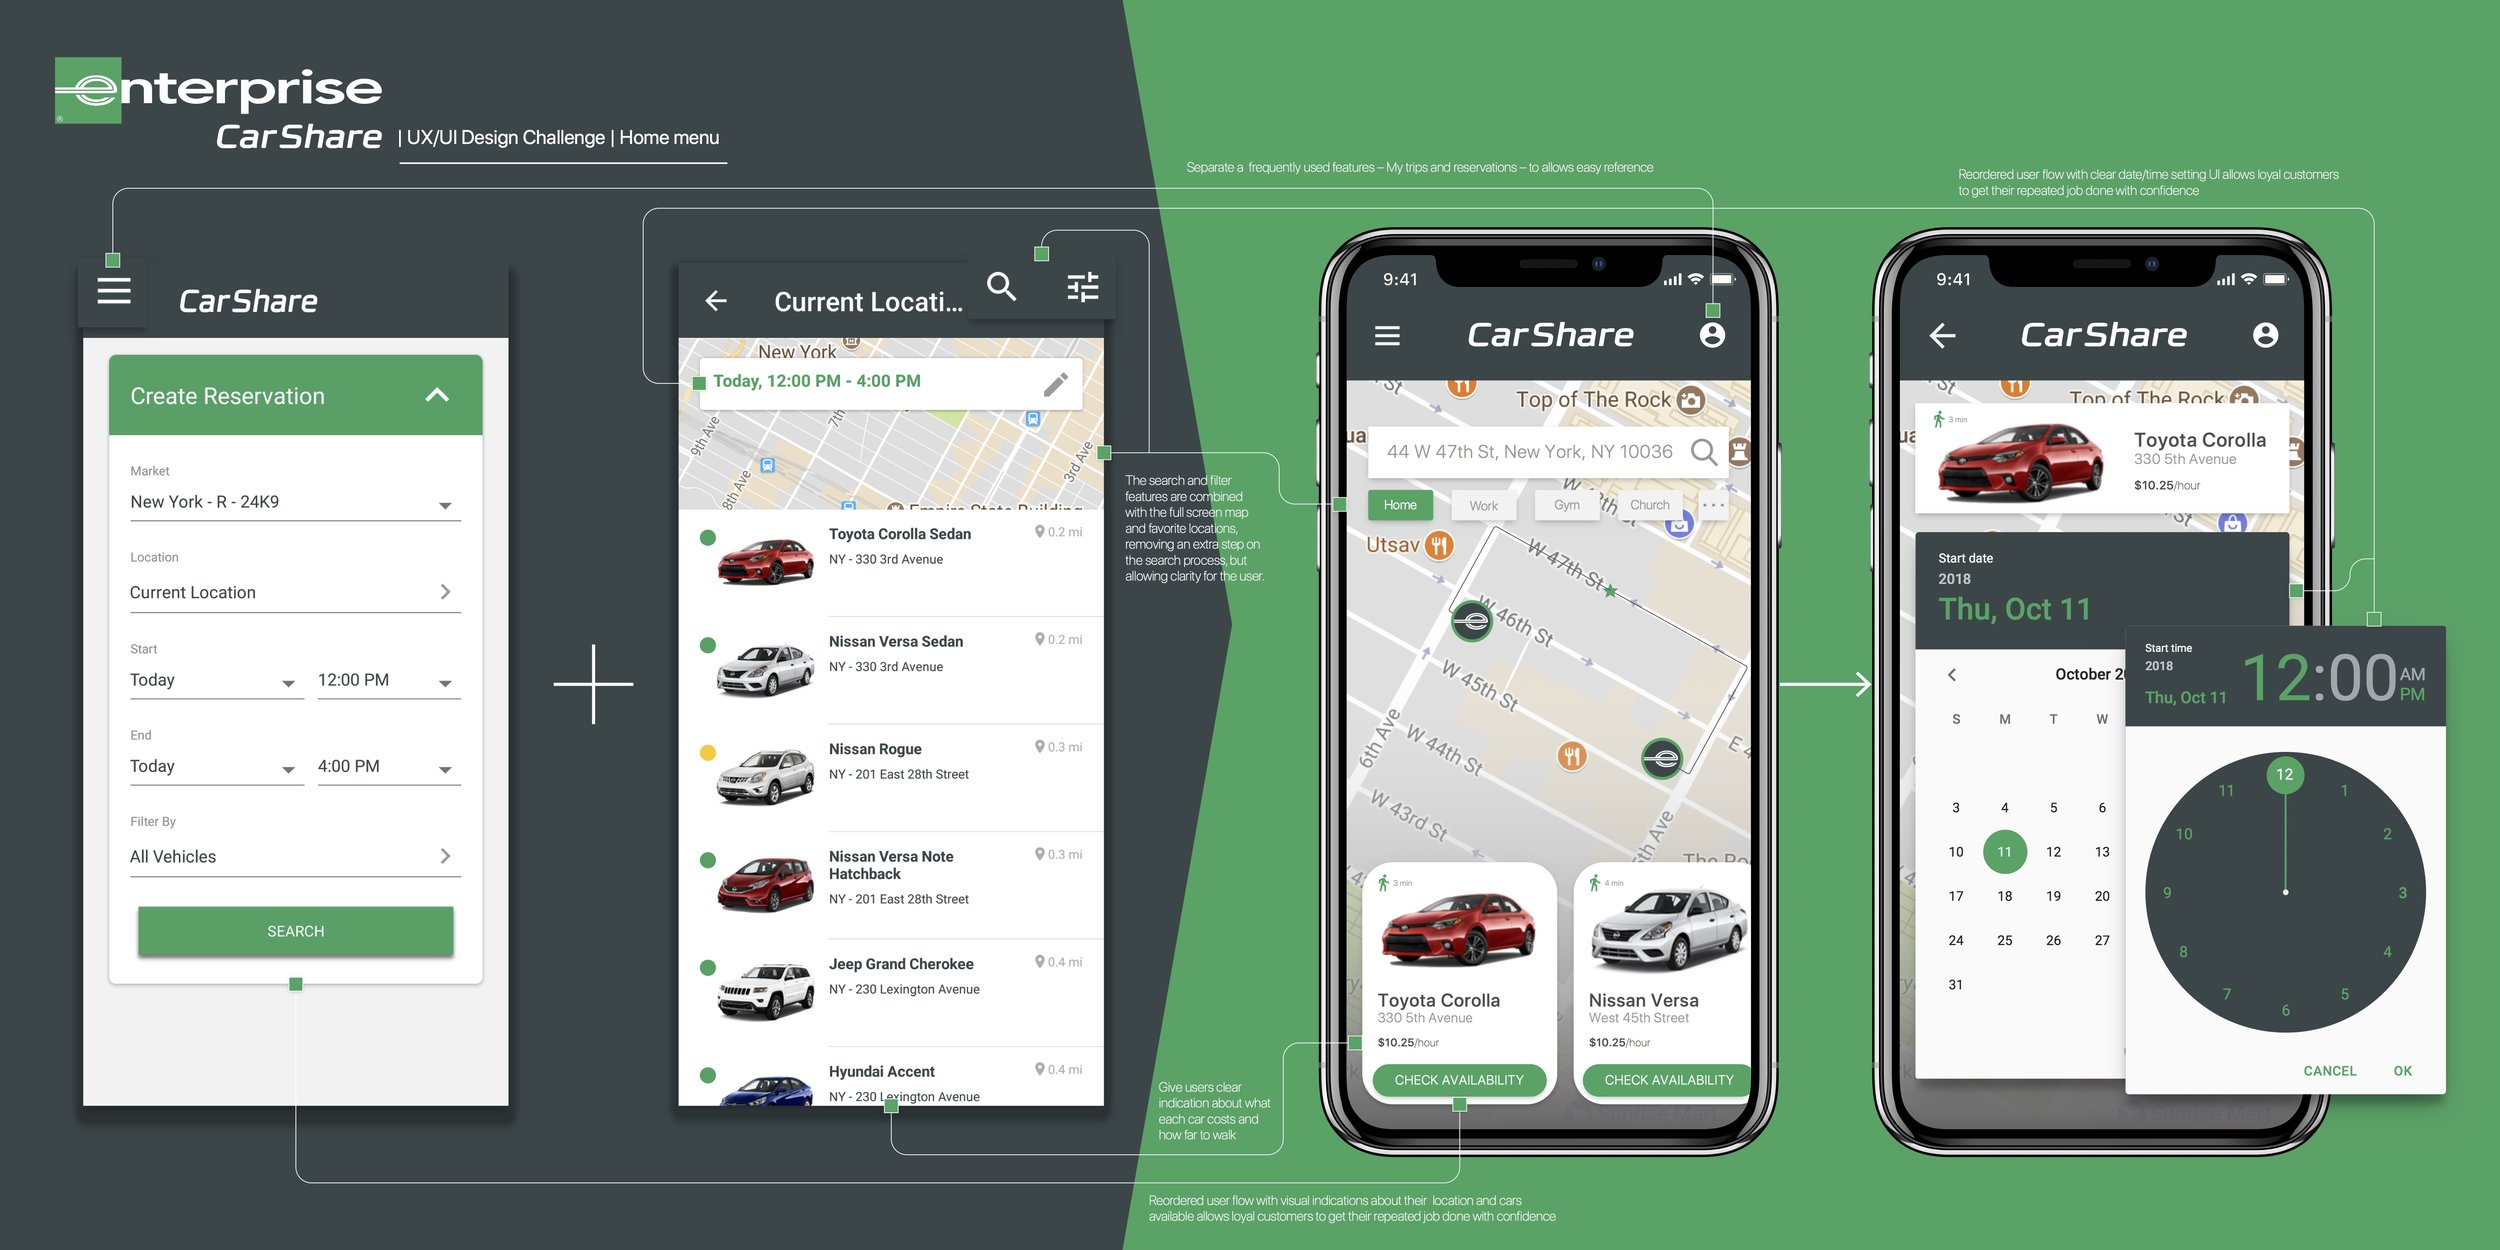 How might we combine Enterprise CarShare's current vehicle search menu to enhance usability in a quick and engaging way?